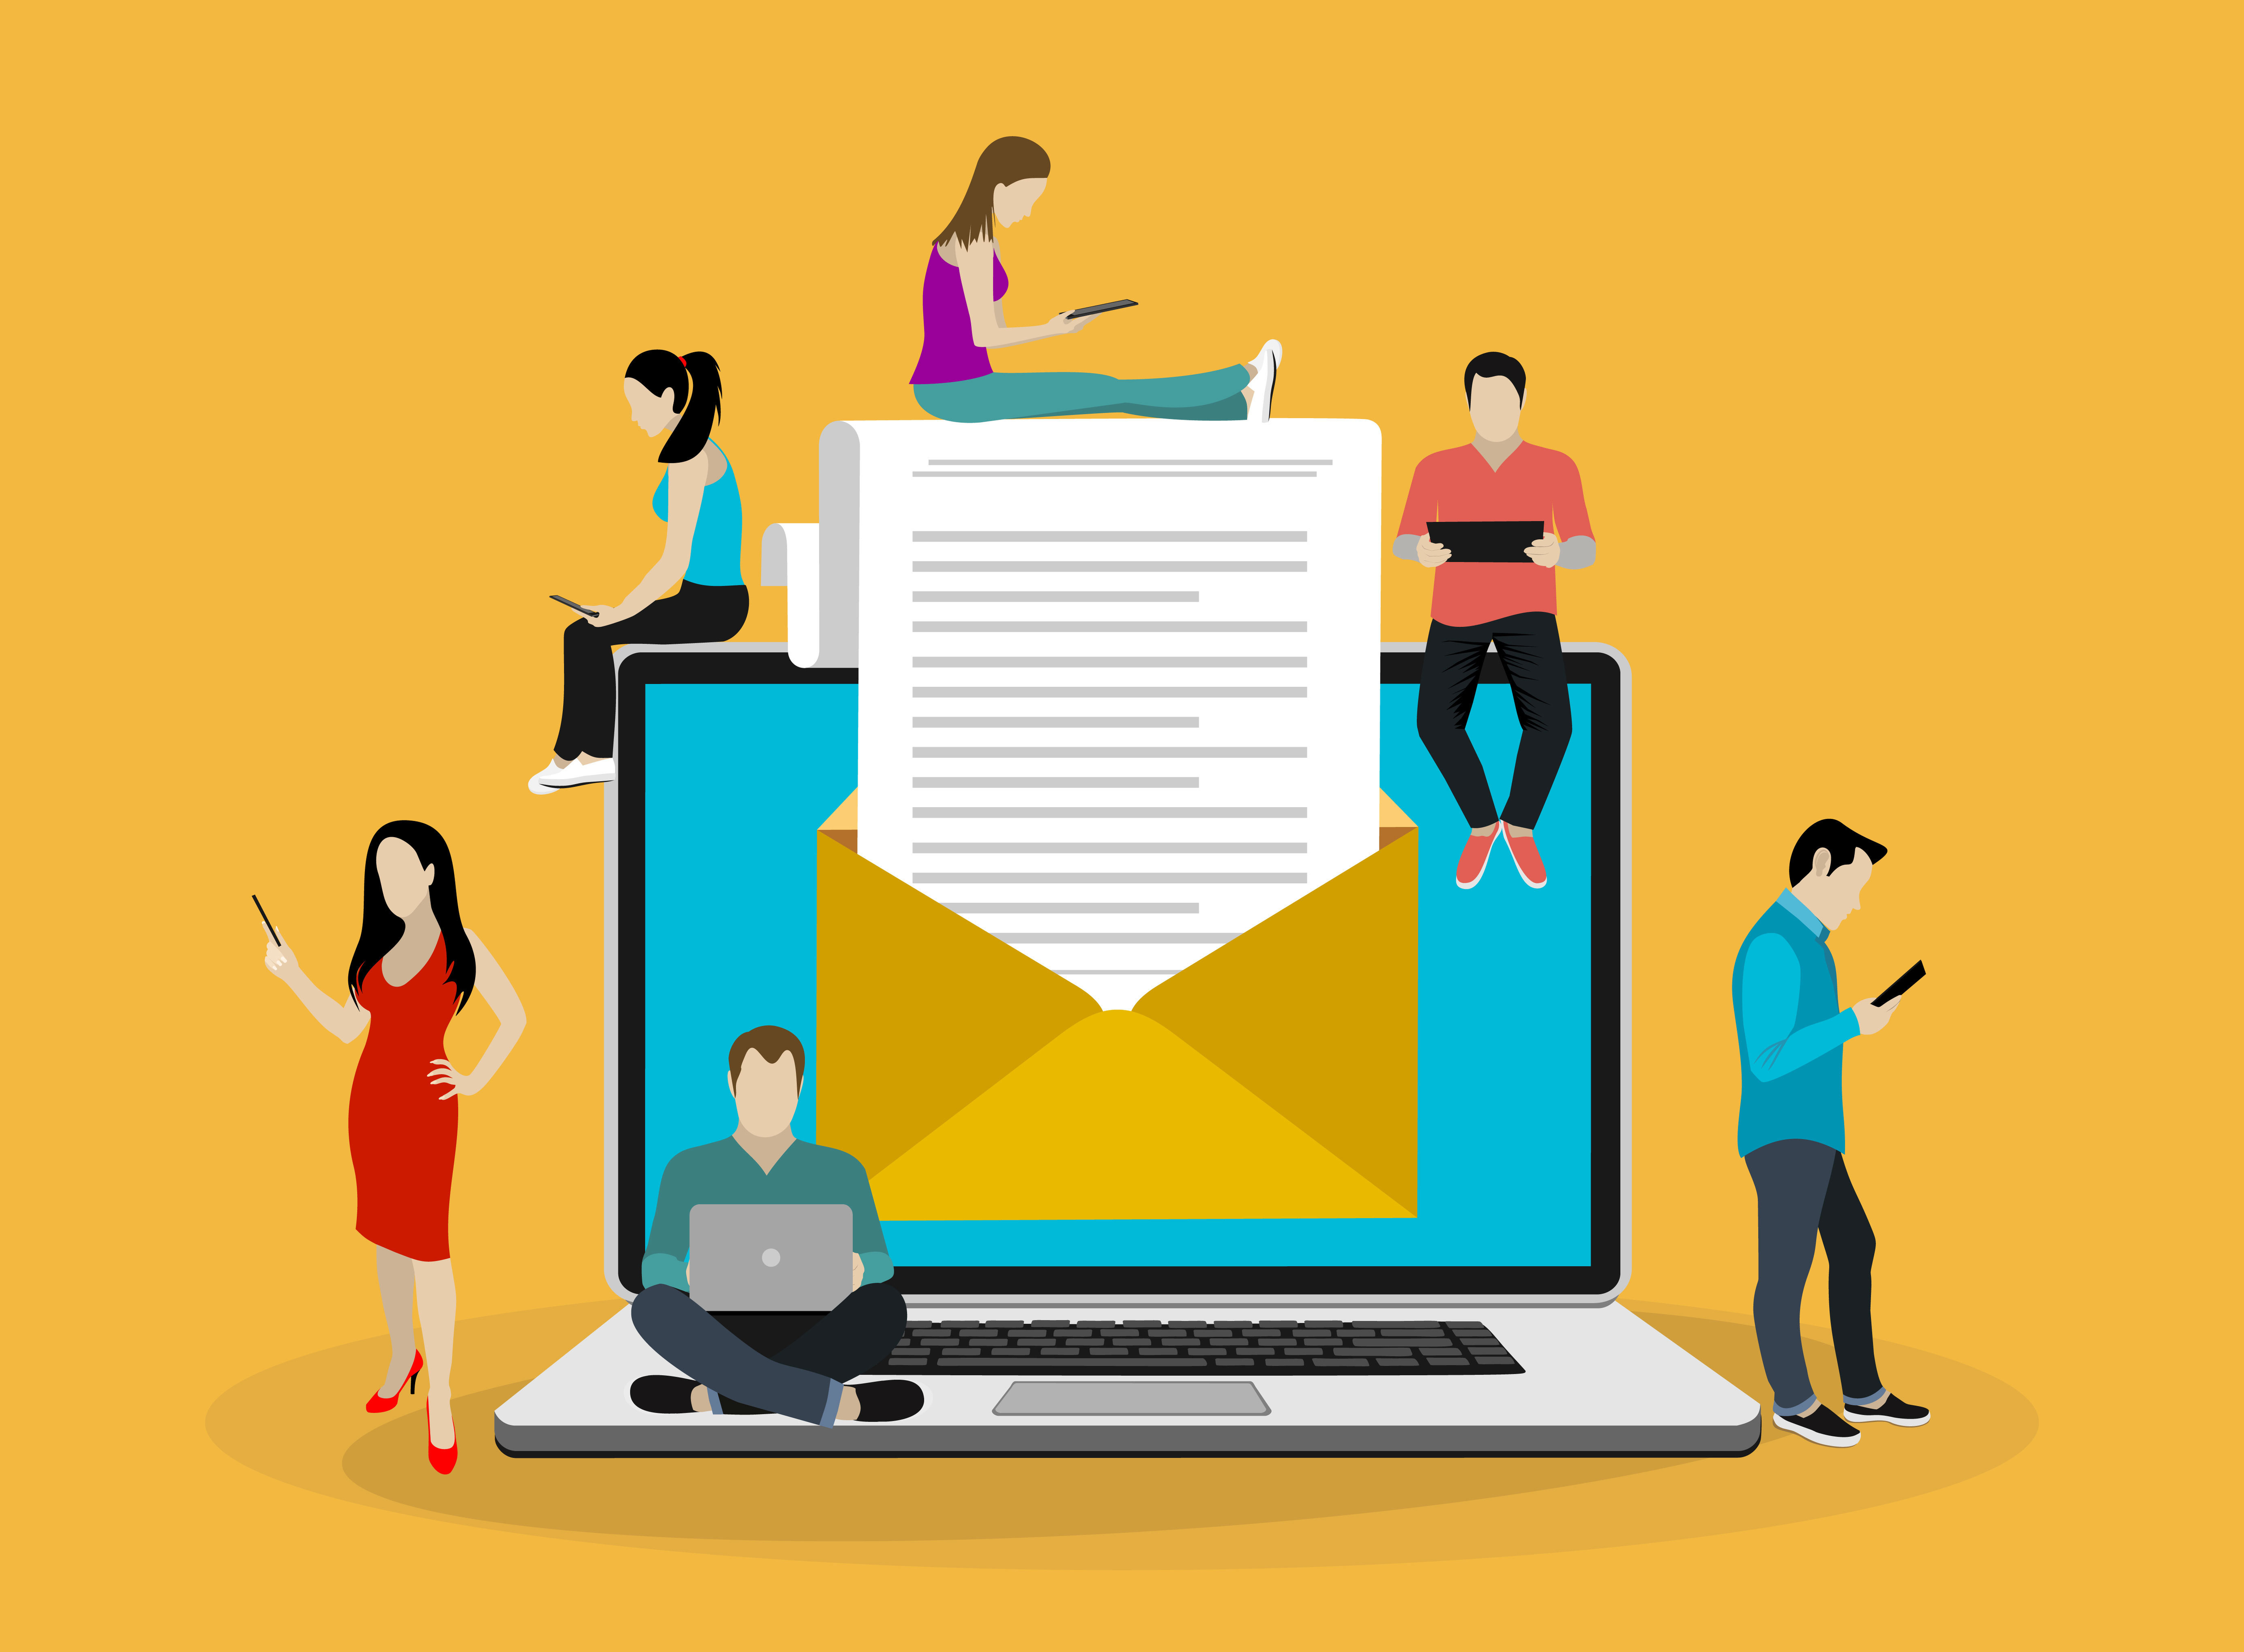 7 Tips for Writing Work Emails Like a Boss